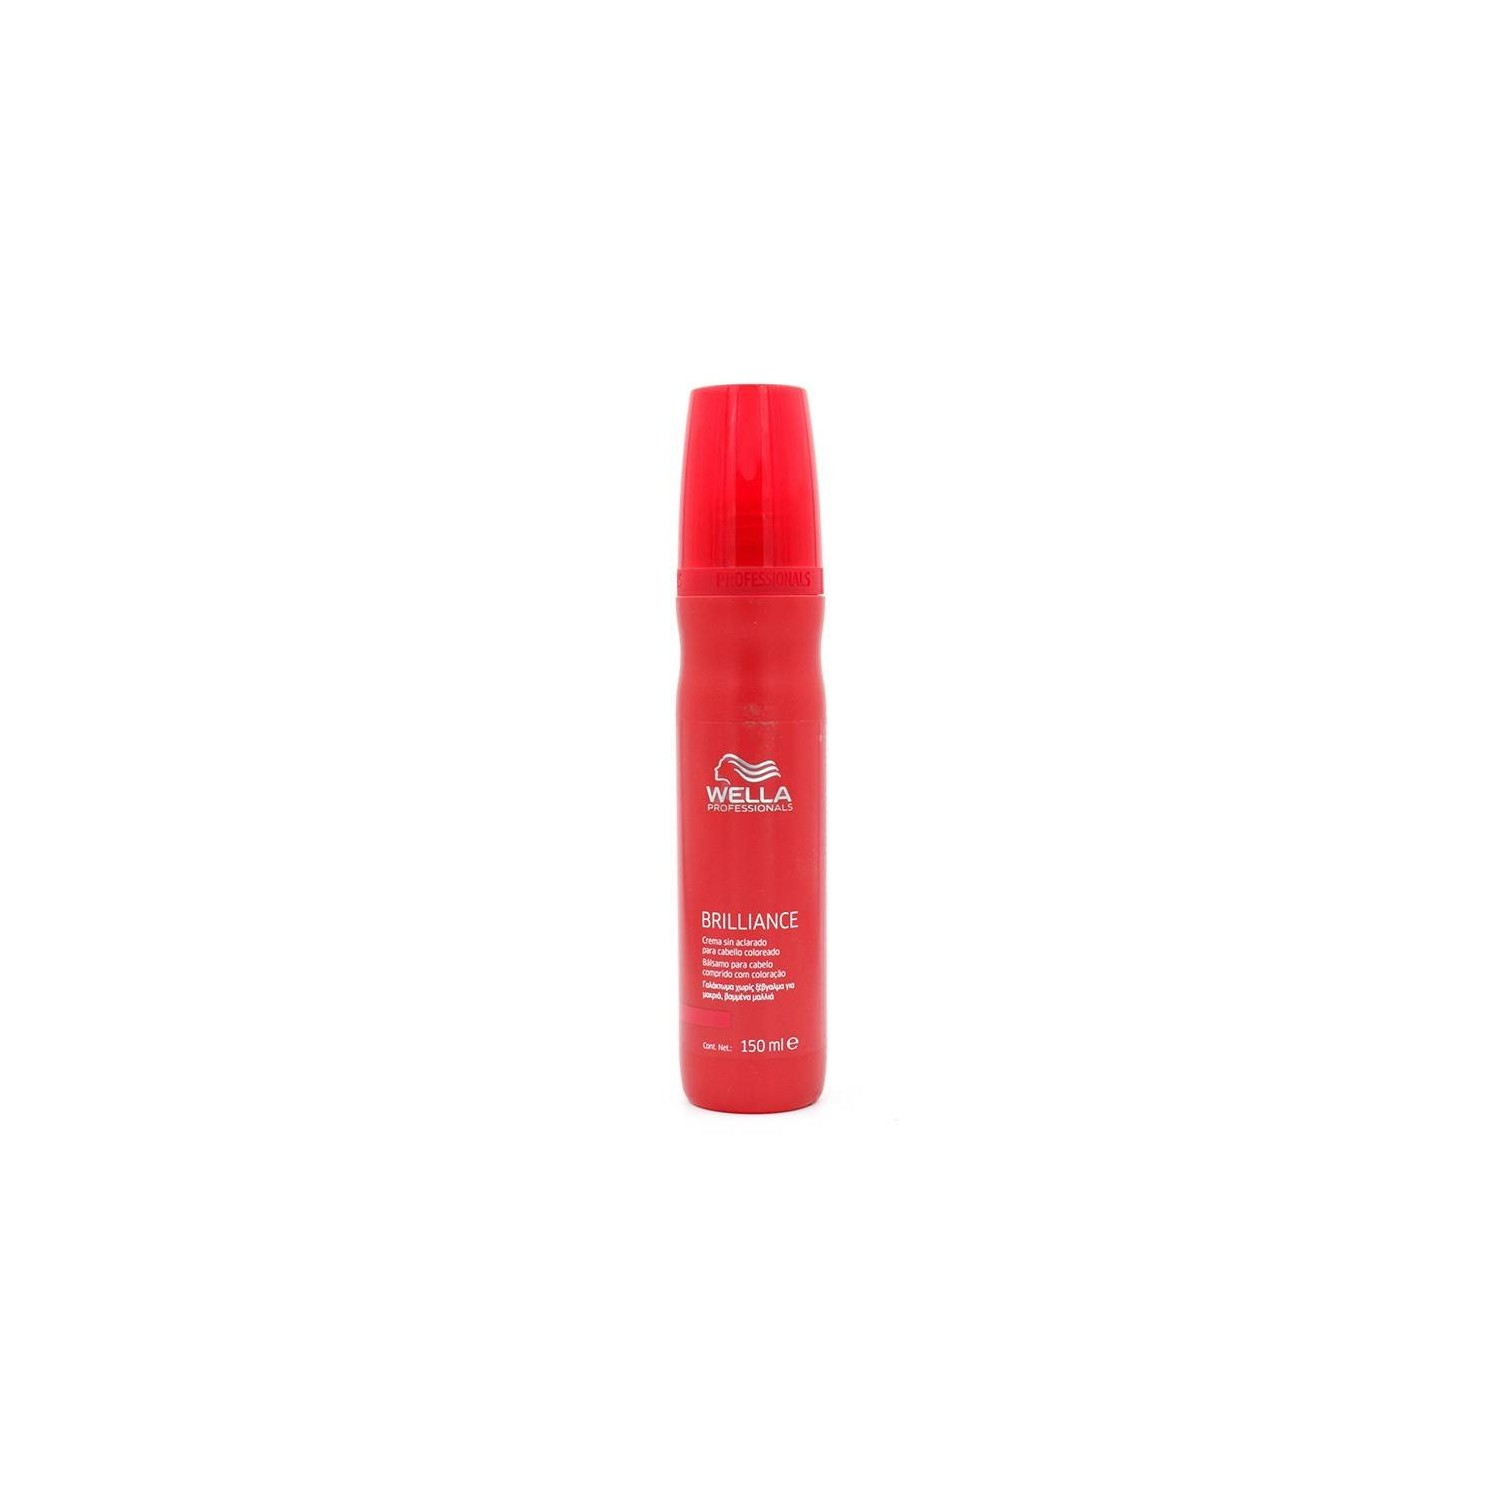 Wella Brilliance Crema Sin Aclarado 150 Ml